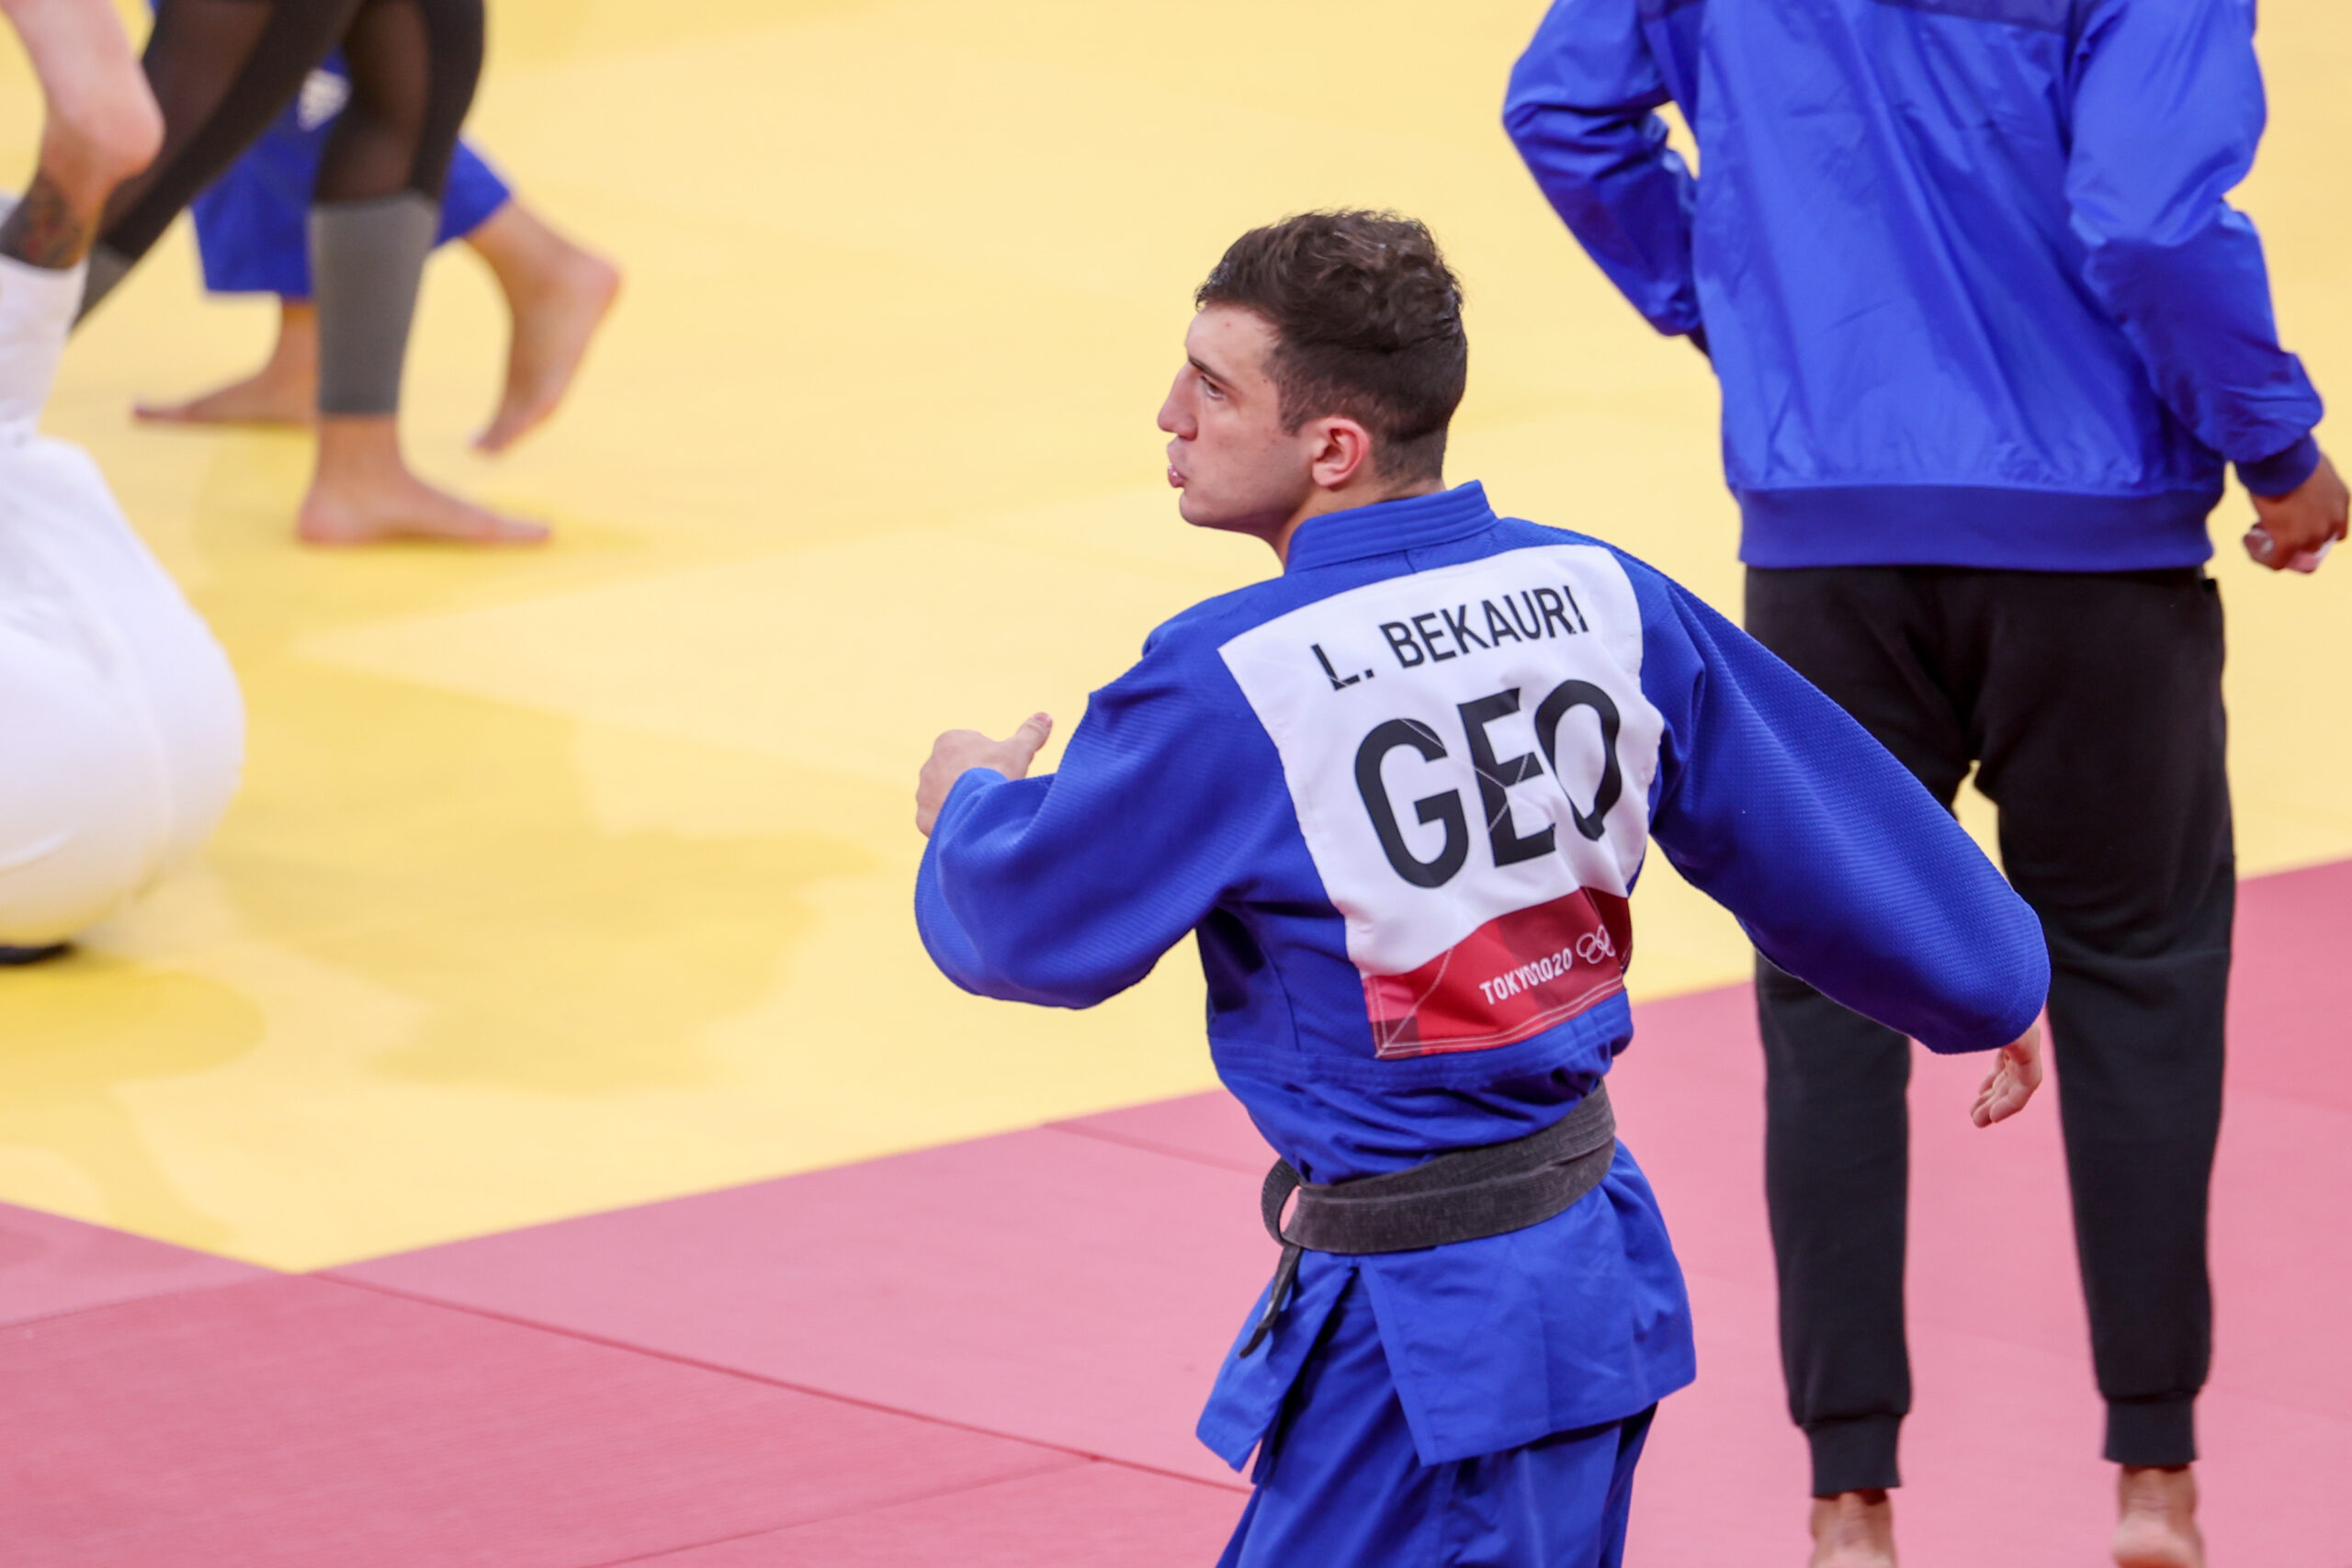 DAY FIVE PRELIMINARIES: EUROPEAN RULE WITH 16 IN FINAL BLOCK